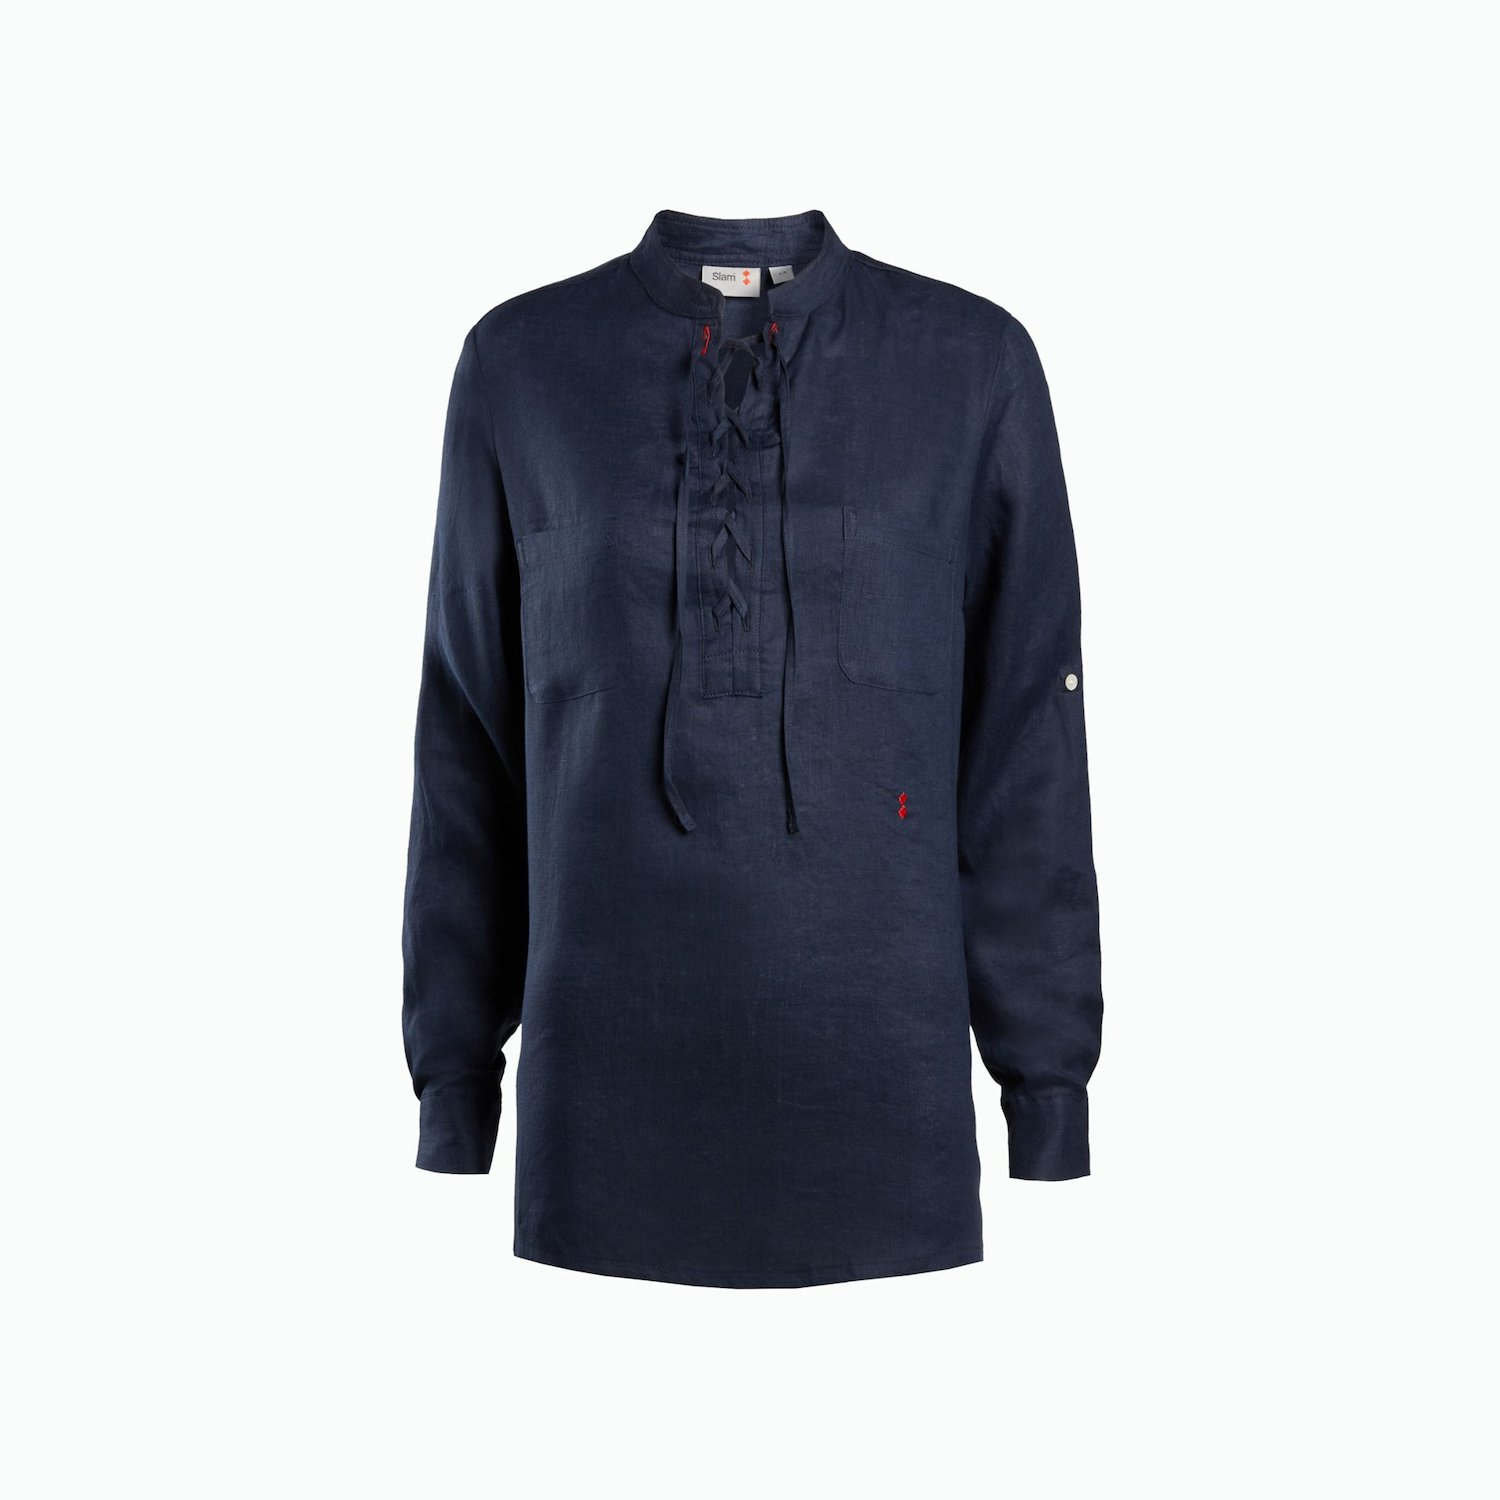 SHIRT A169 - Marinenblau